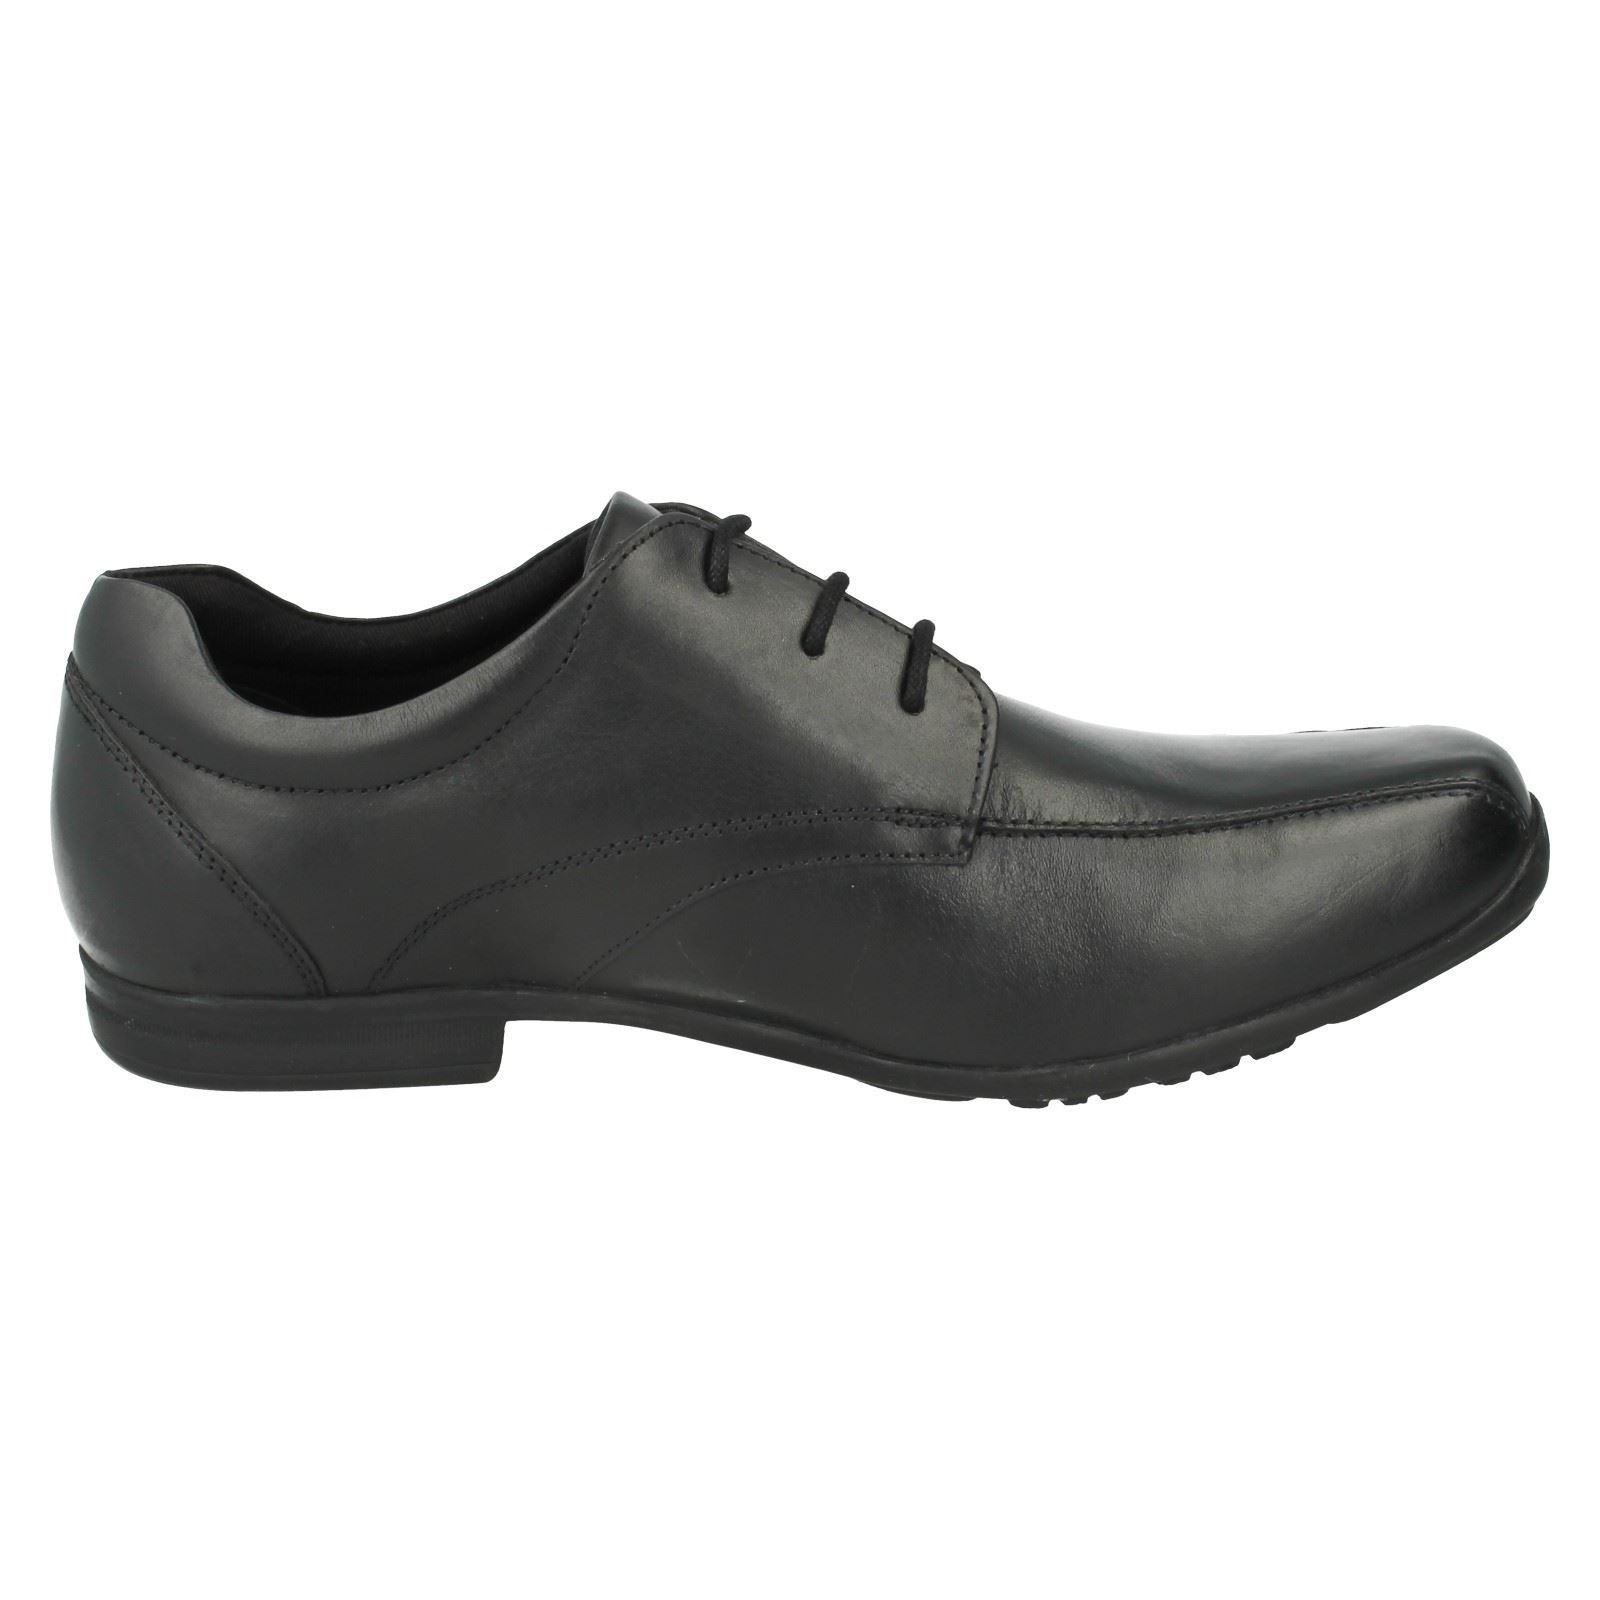 Boys Buckle My Shoe Back To School Shoes Style